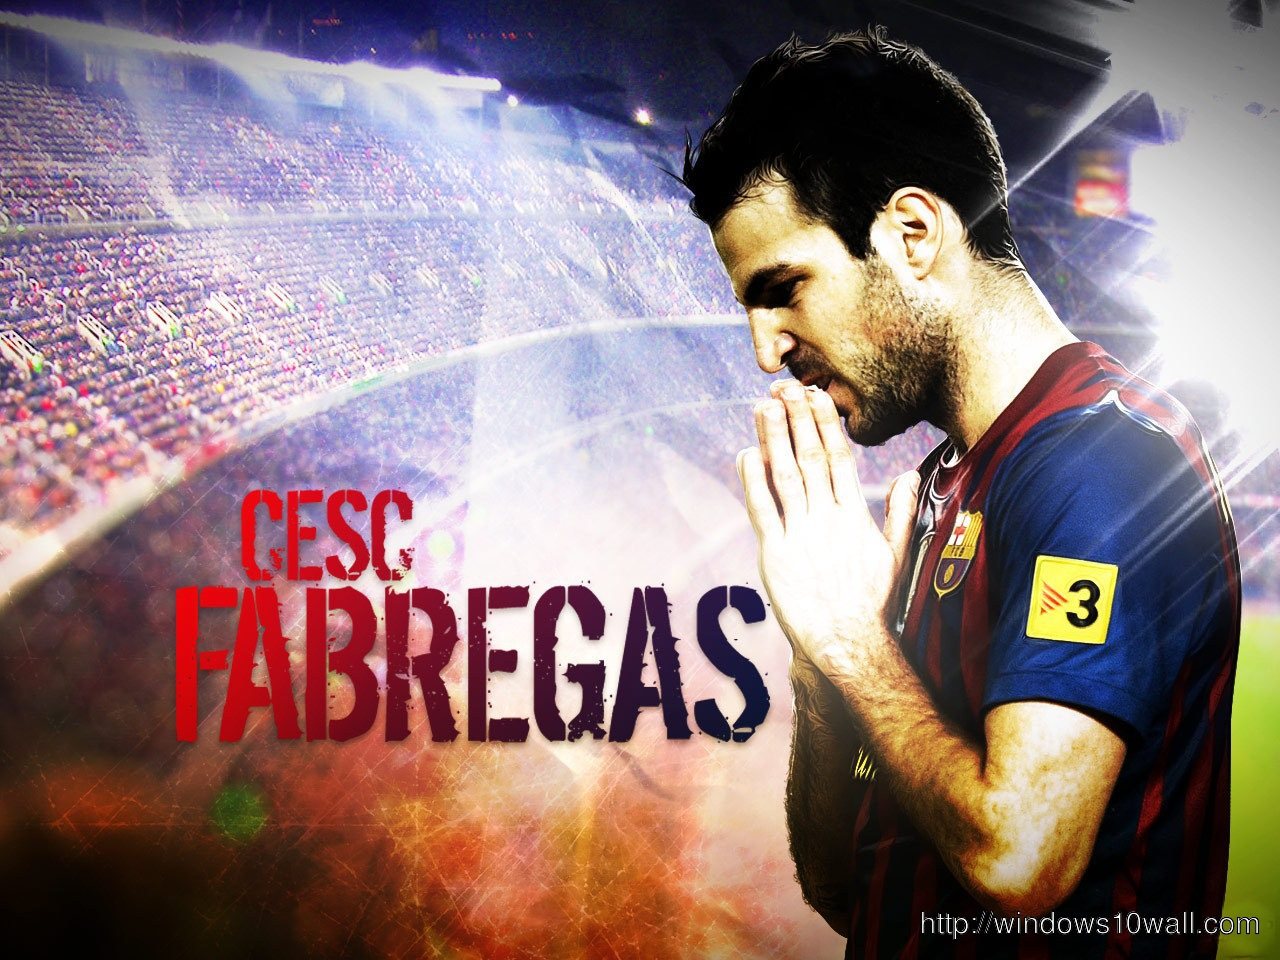 Cesc Fabregas New 2014 Hd Background Wallpaper